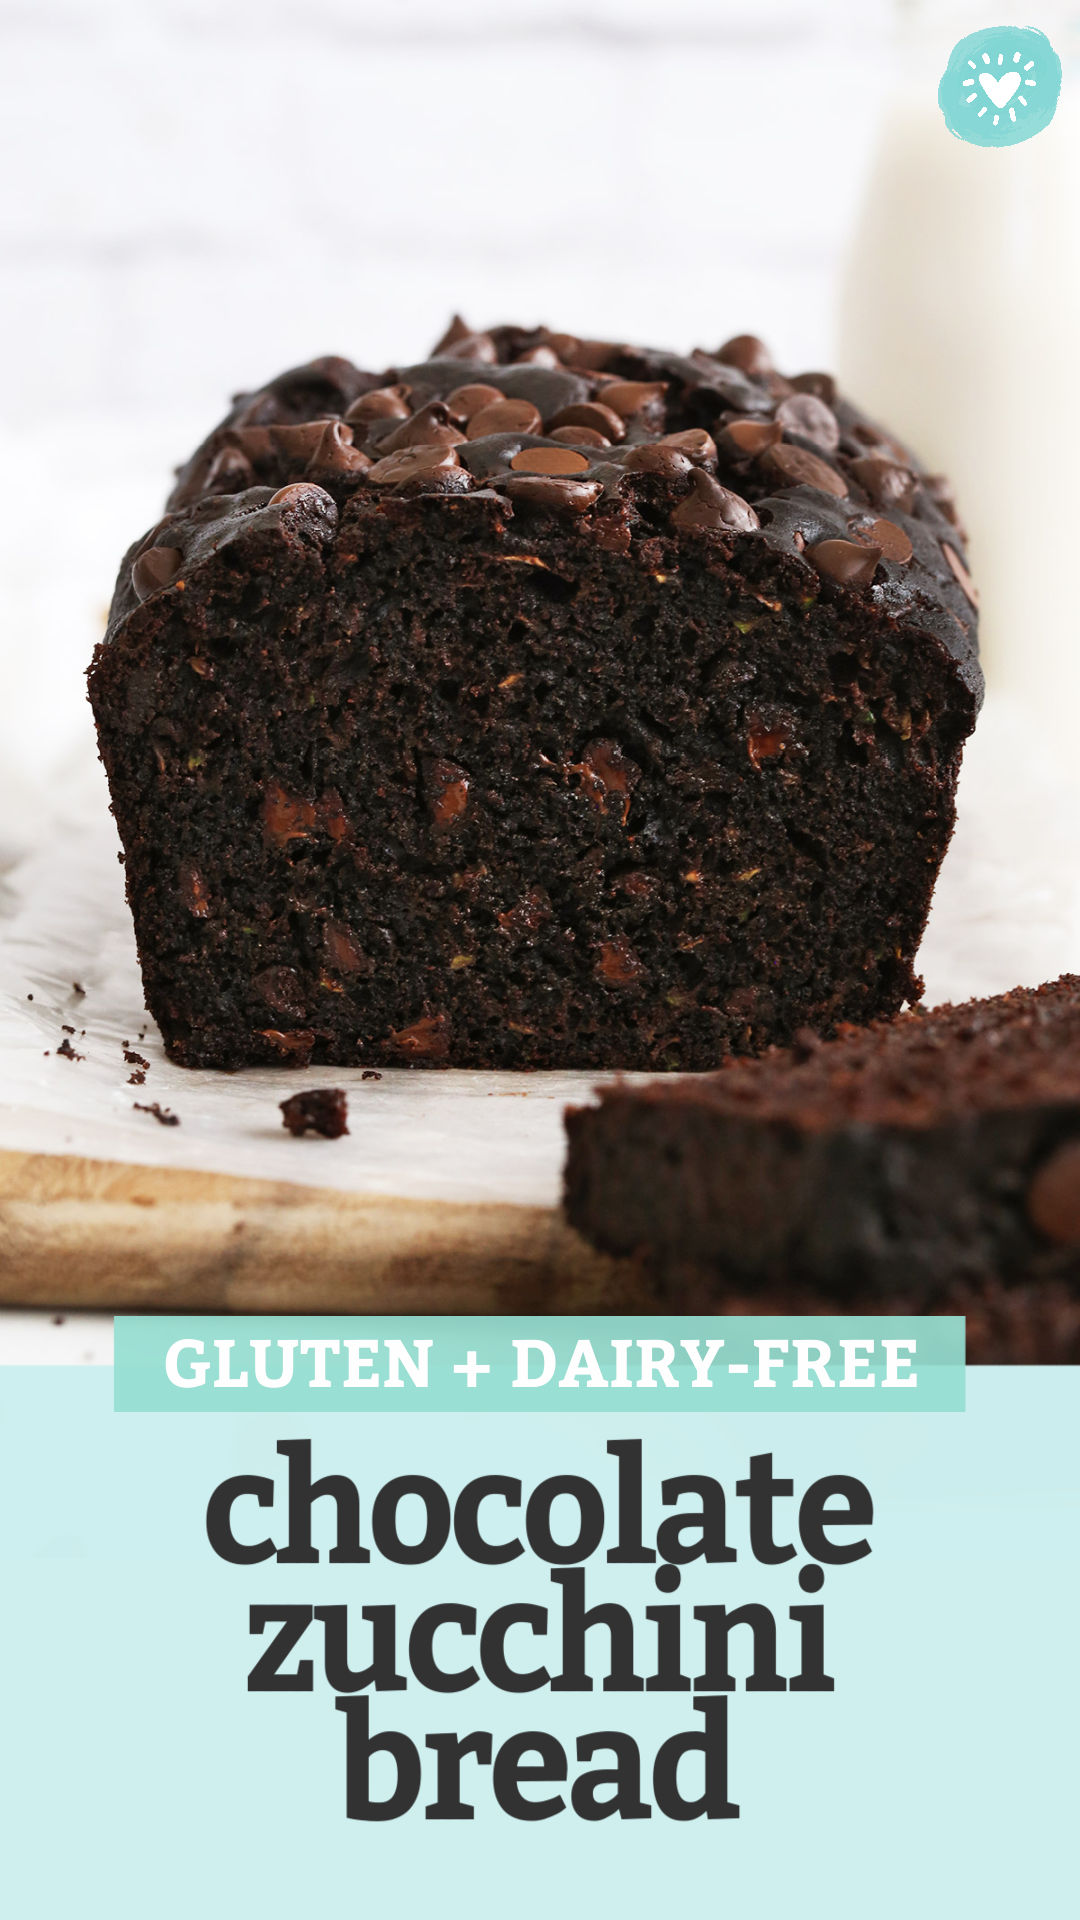 """A front view of a sliced loaf of gluten free chocolate zucchini bread with text overlay that reads """"Gluten + Dairy-Free Chocolate Zucchini Bread"""""""